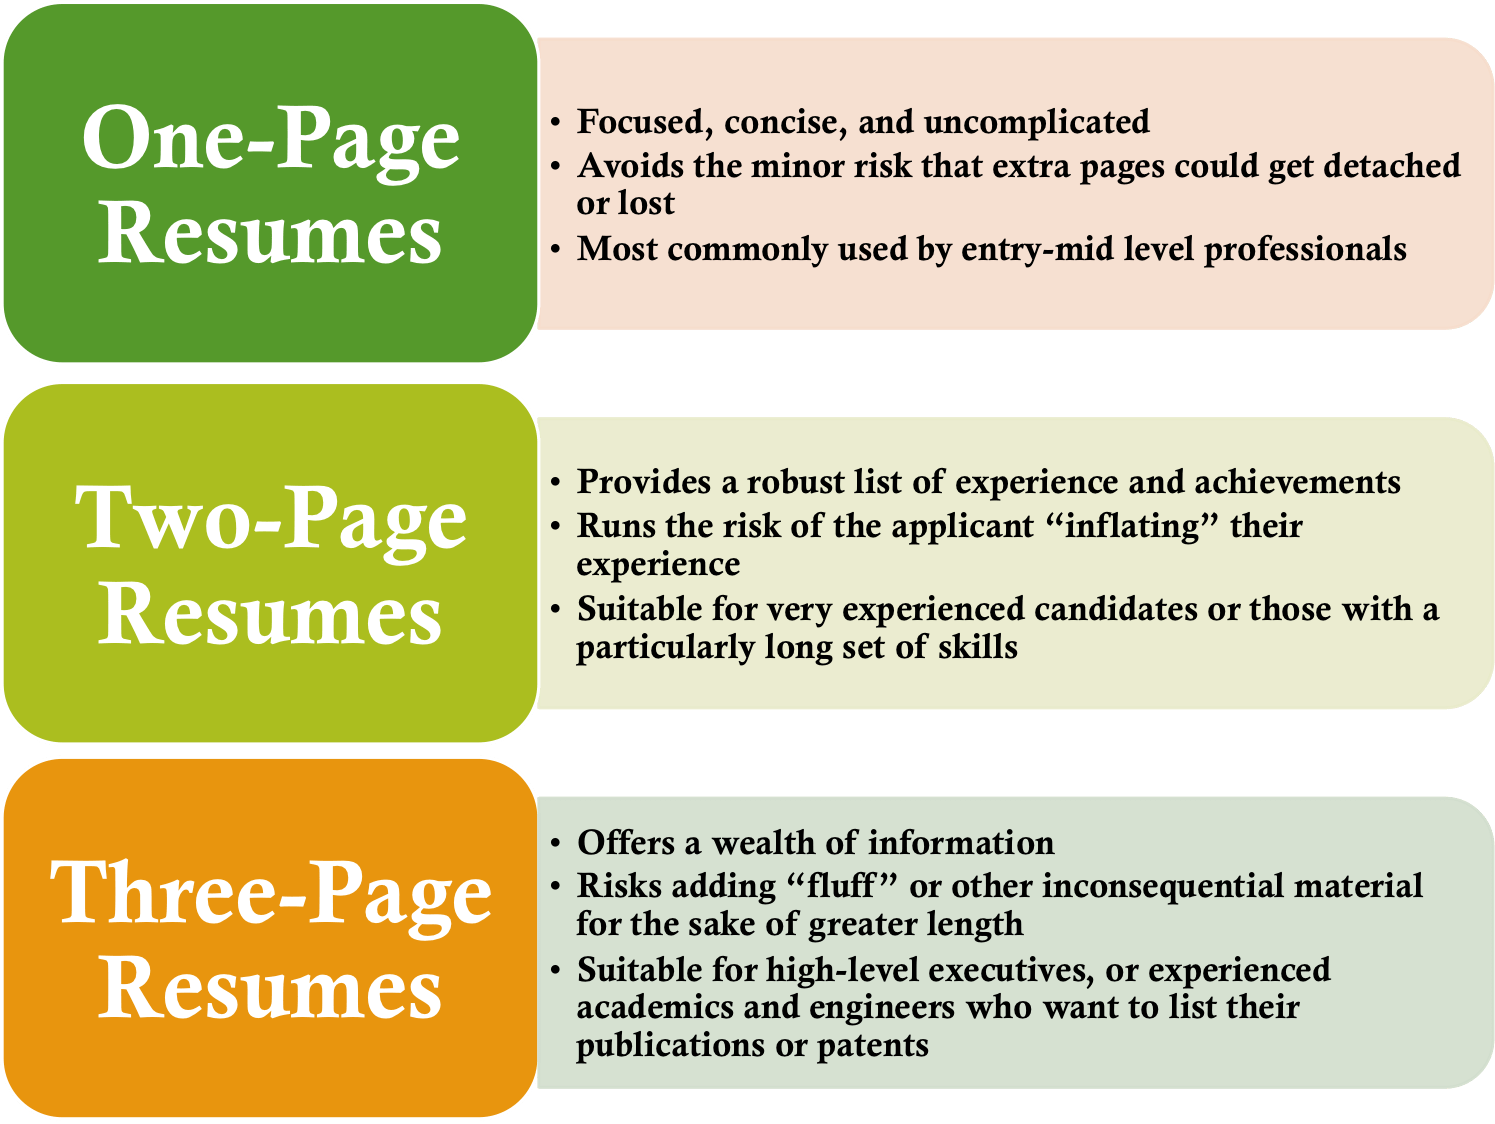 2 Page Resume Is It More Acceptable Now? TigerDroppings Com